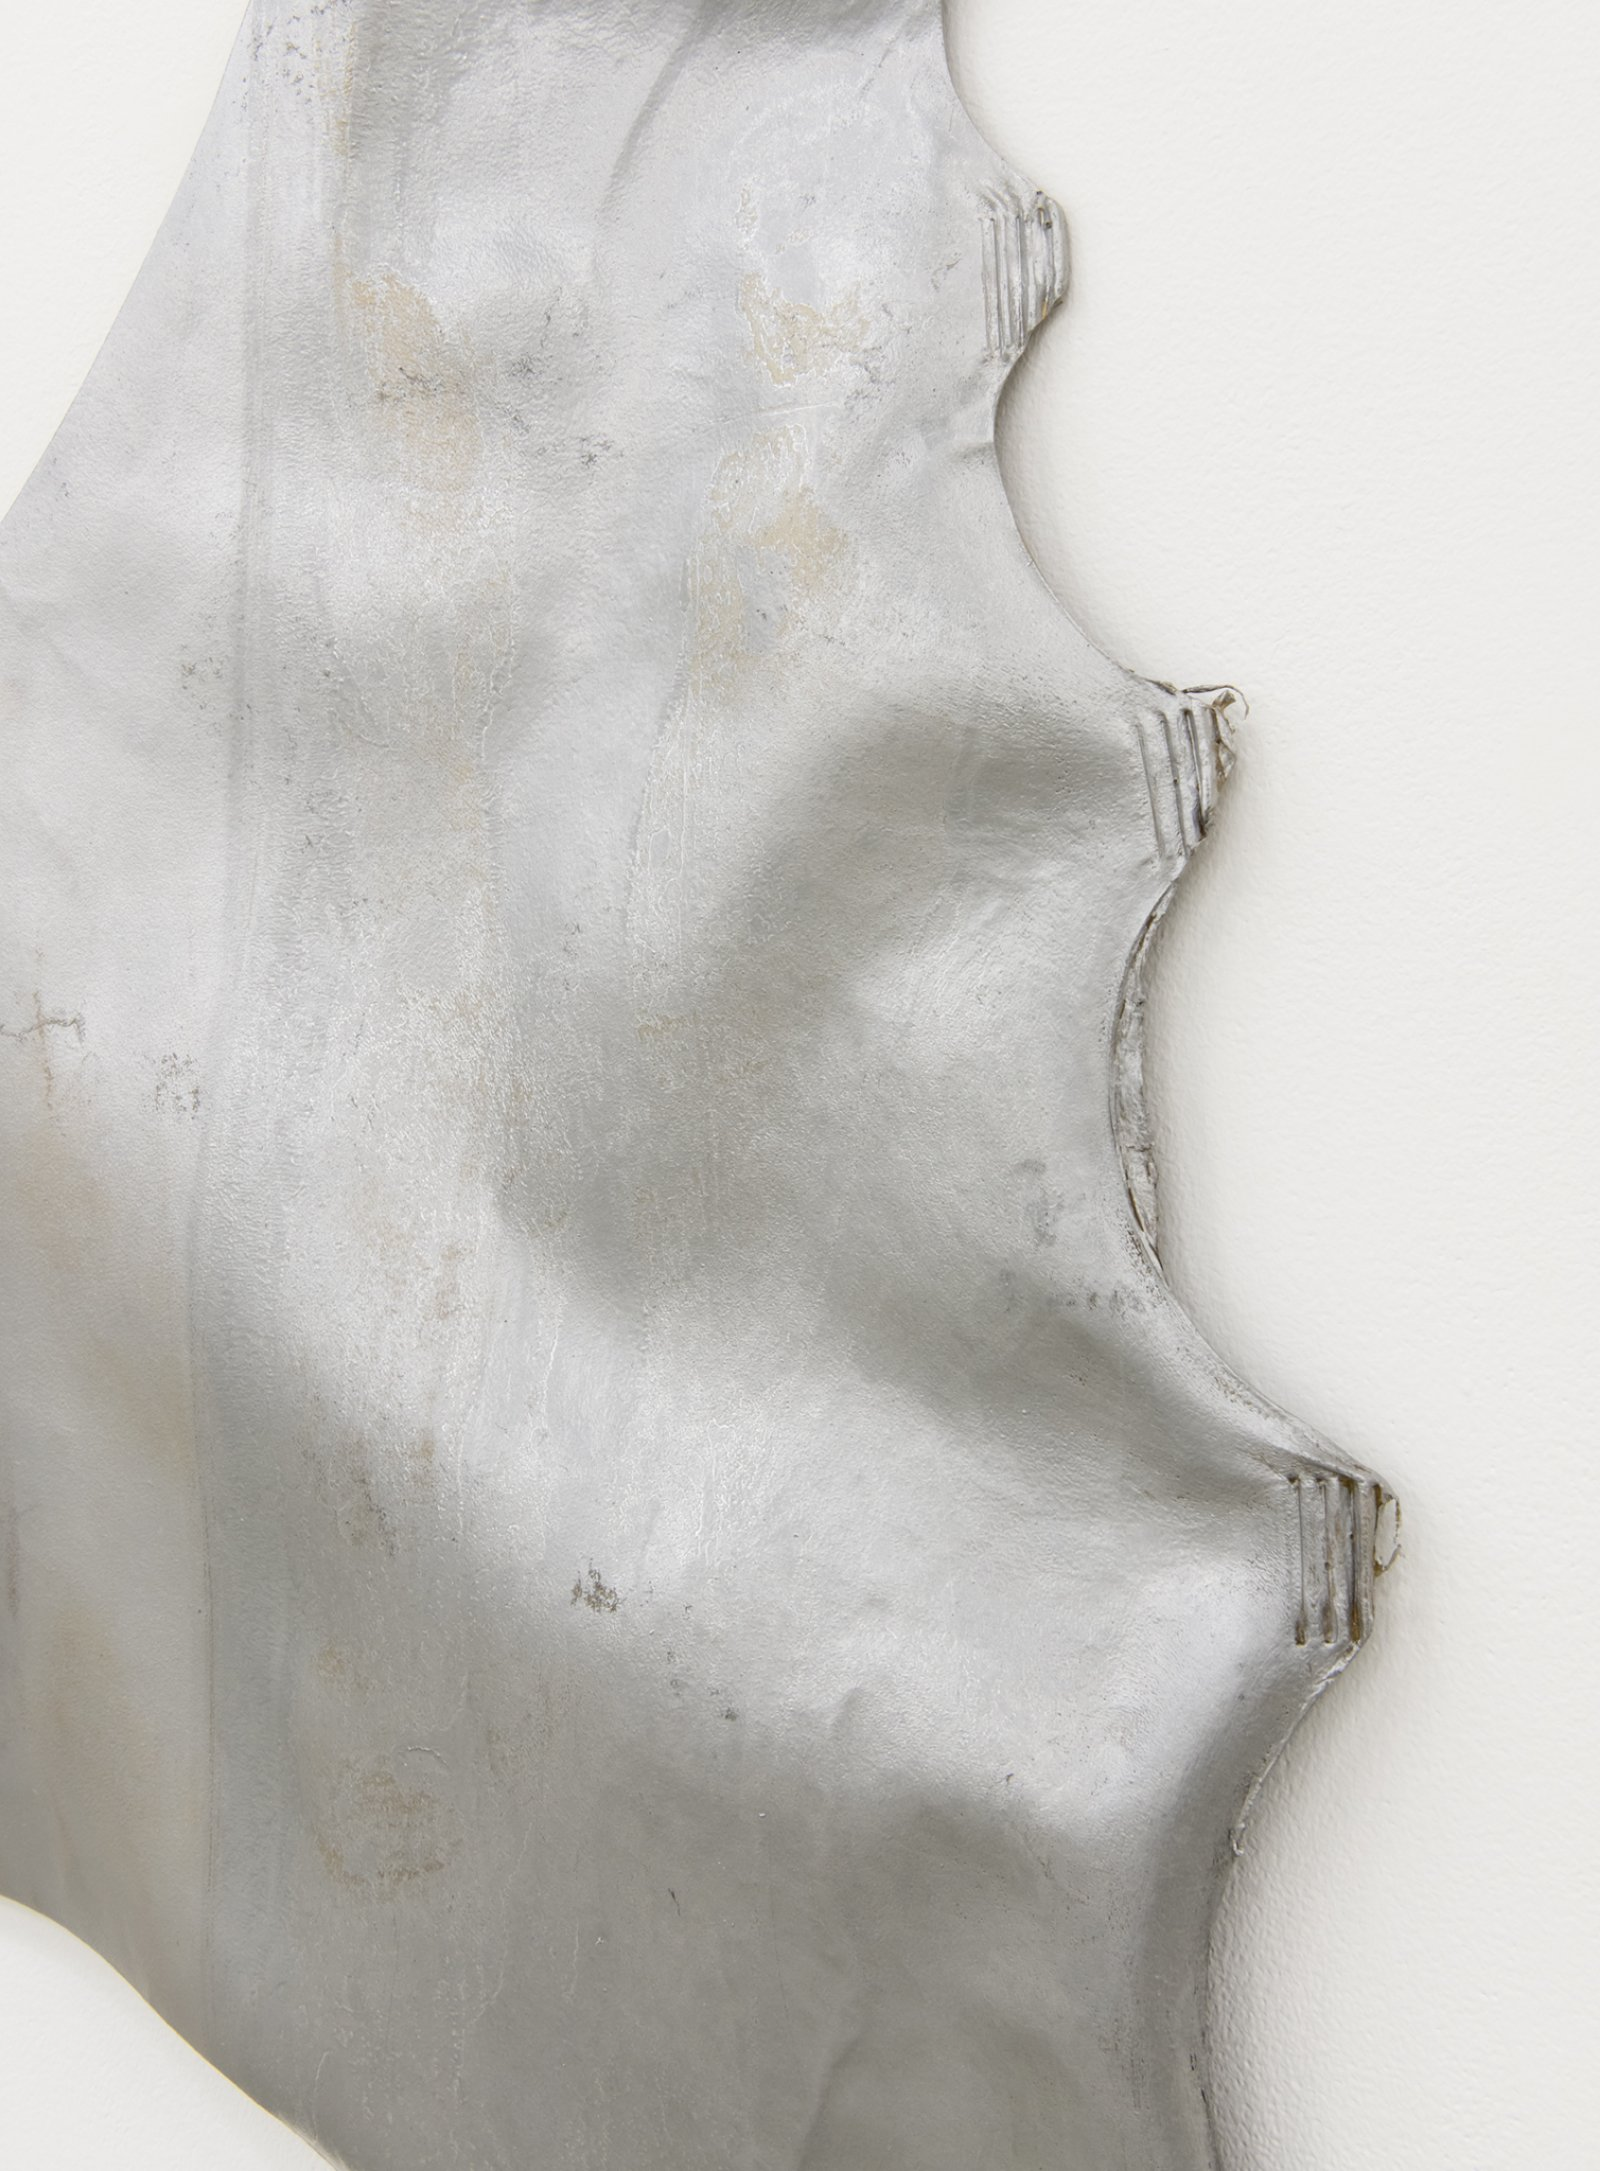 Brian Jungen,Untitled (detail), 2010, elk hide and silver ink, 106 x 53 x 4 in. (269 x 135 x 10 cm)